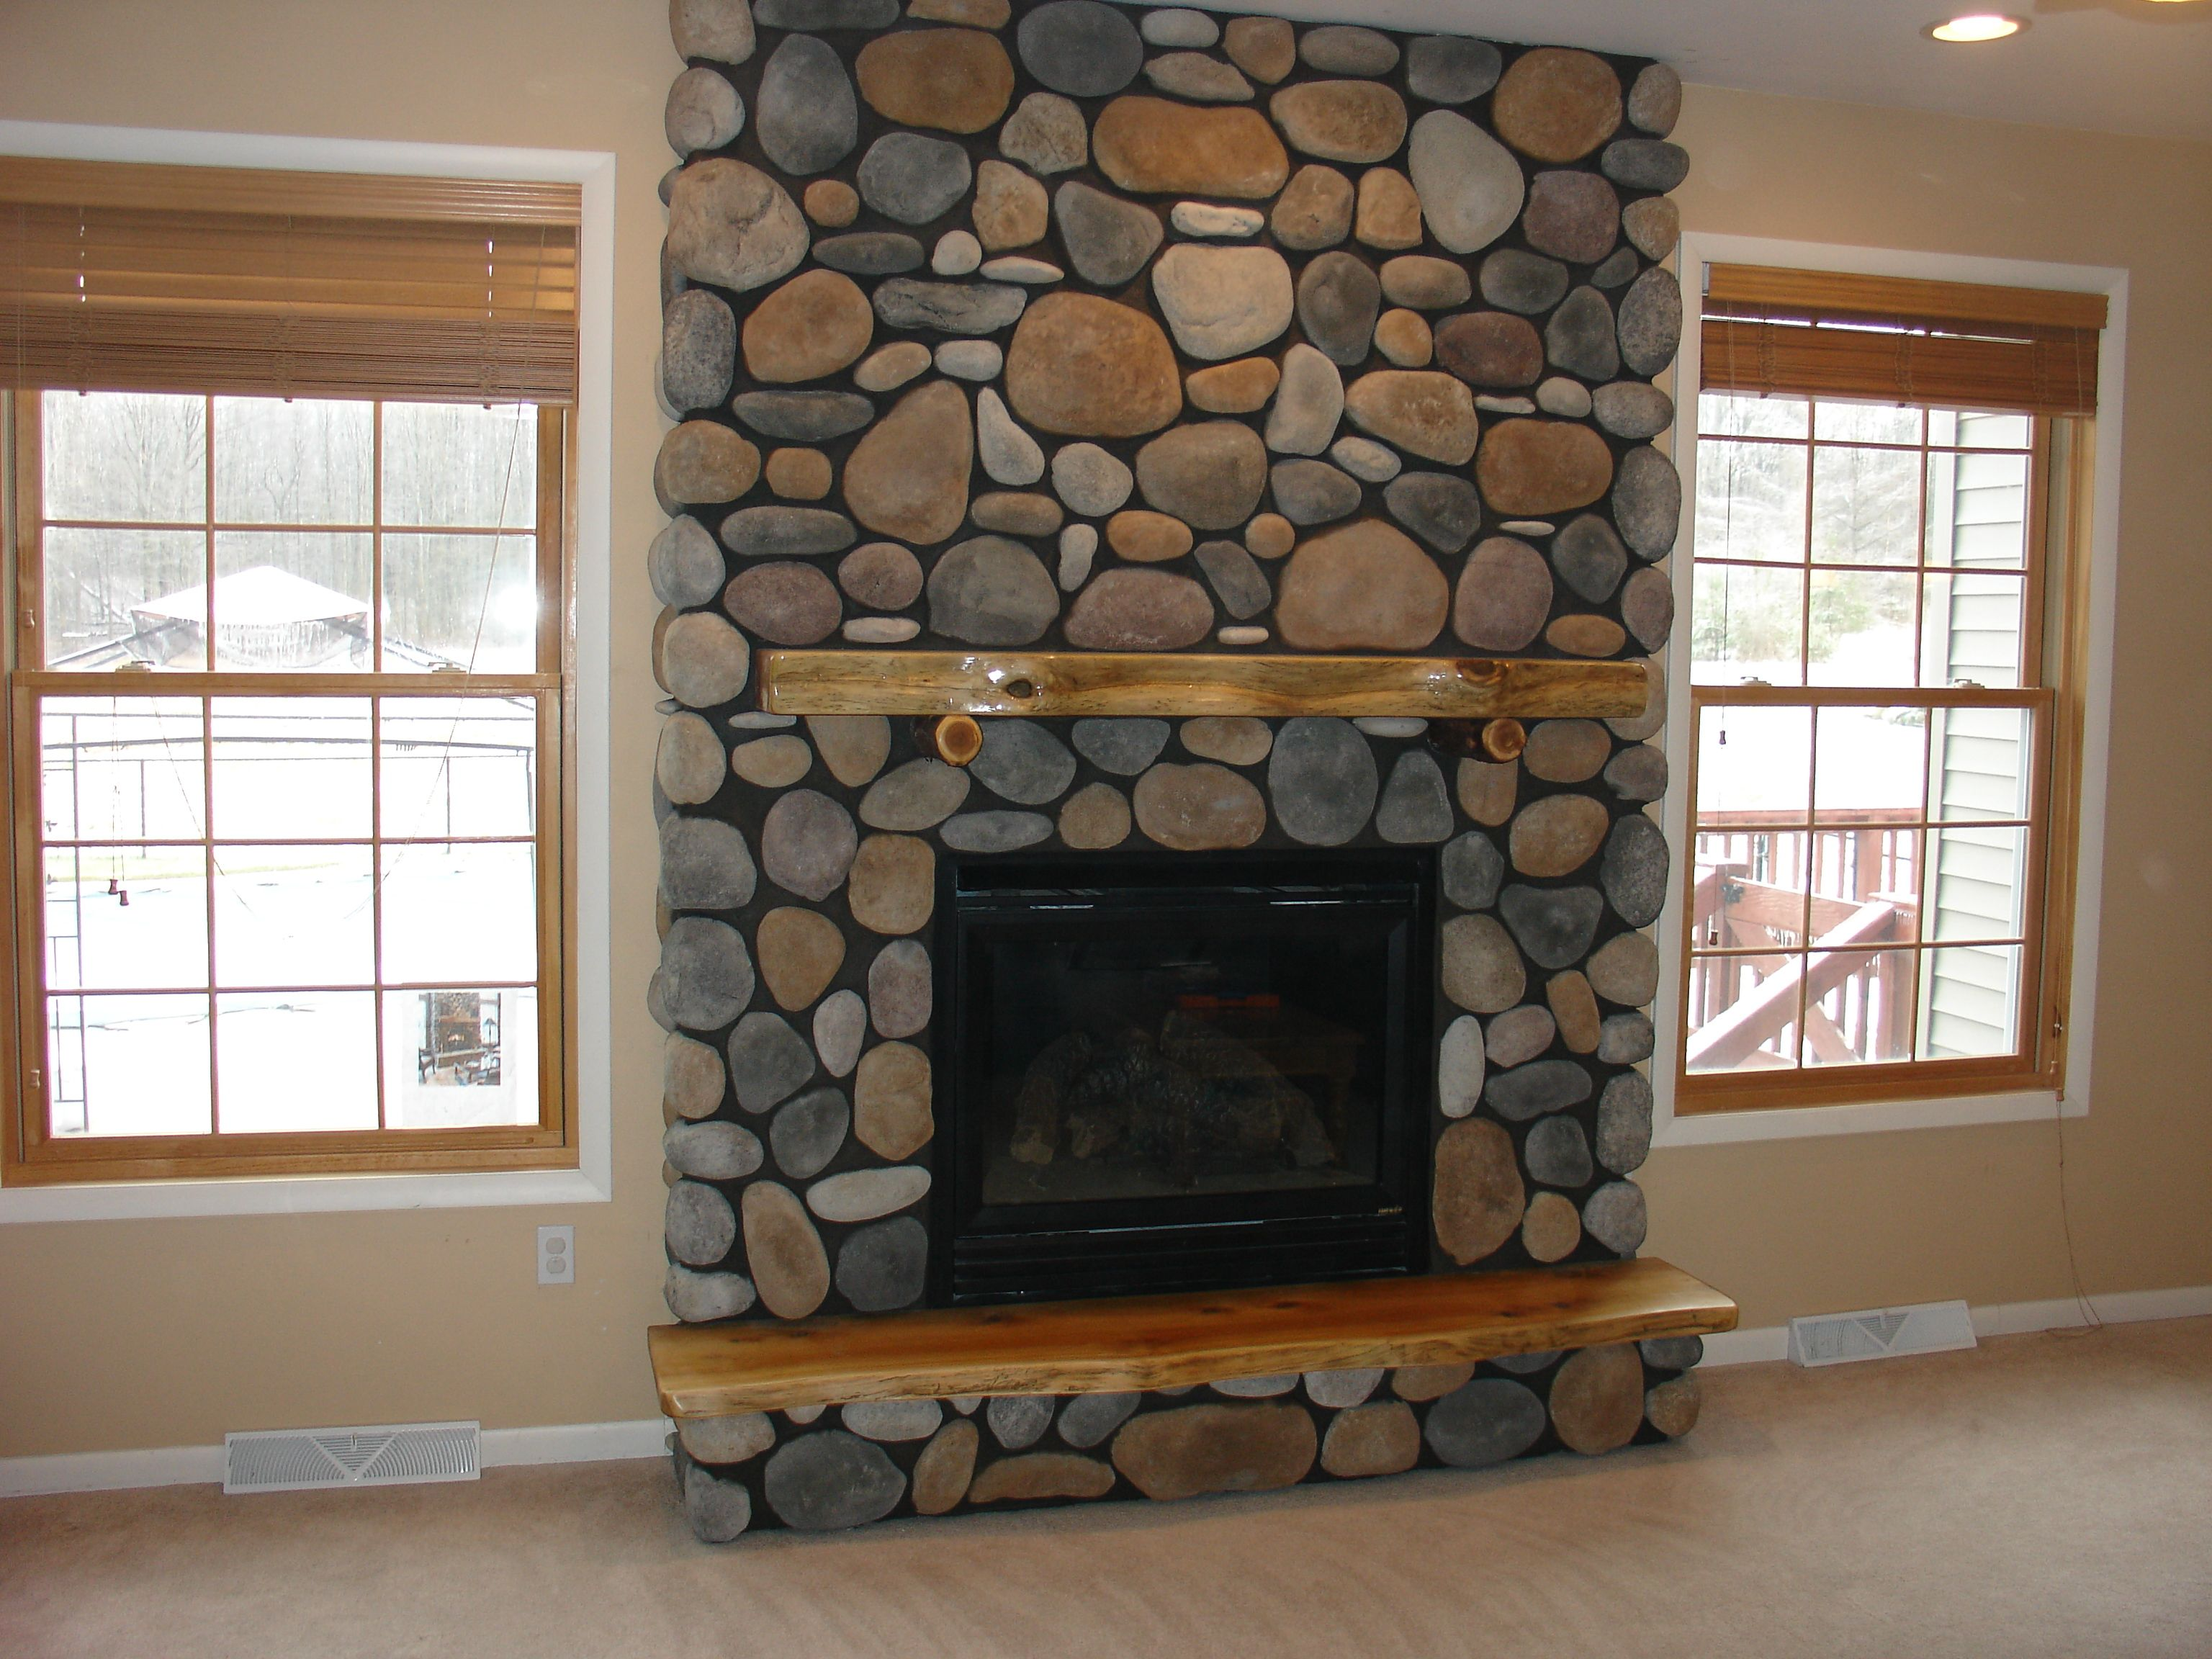 River Stone Fireplace Designs Adirondack Style Fireplace With River Rock Cultured Stone An Stone Wall Design Stone Fireplace Designs Stone Fireplace Pictures